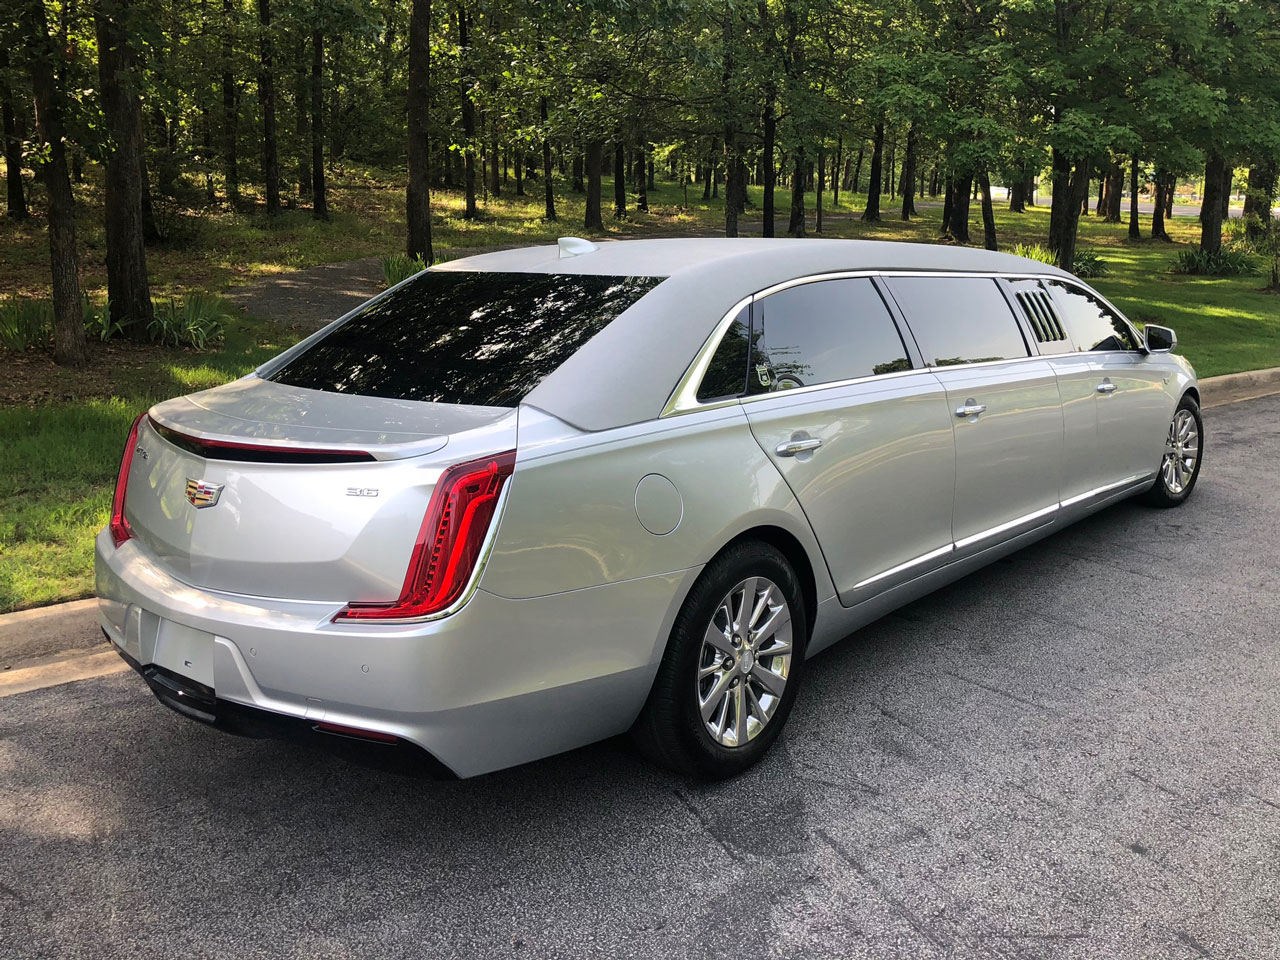 2019 Armbruster Stageway Cadillac 70 Stretch Limousine 13